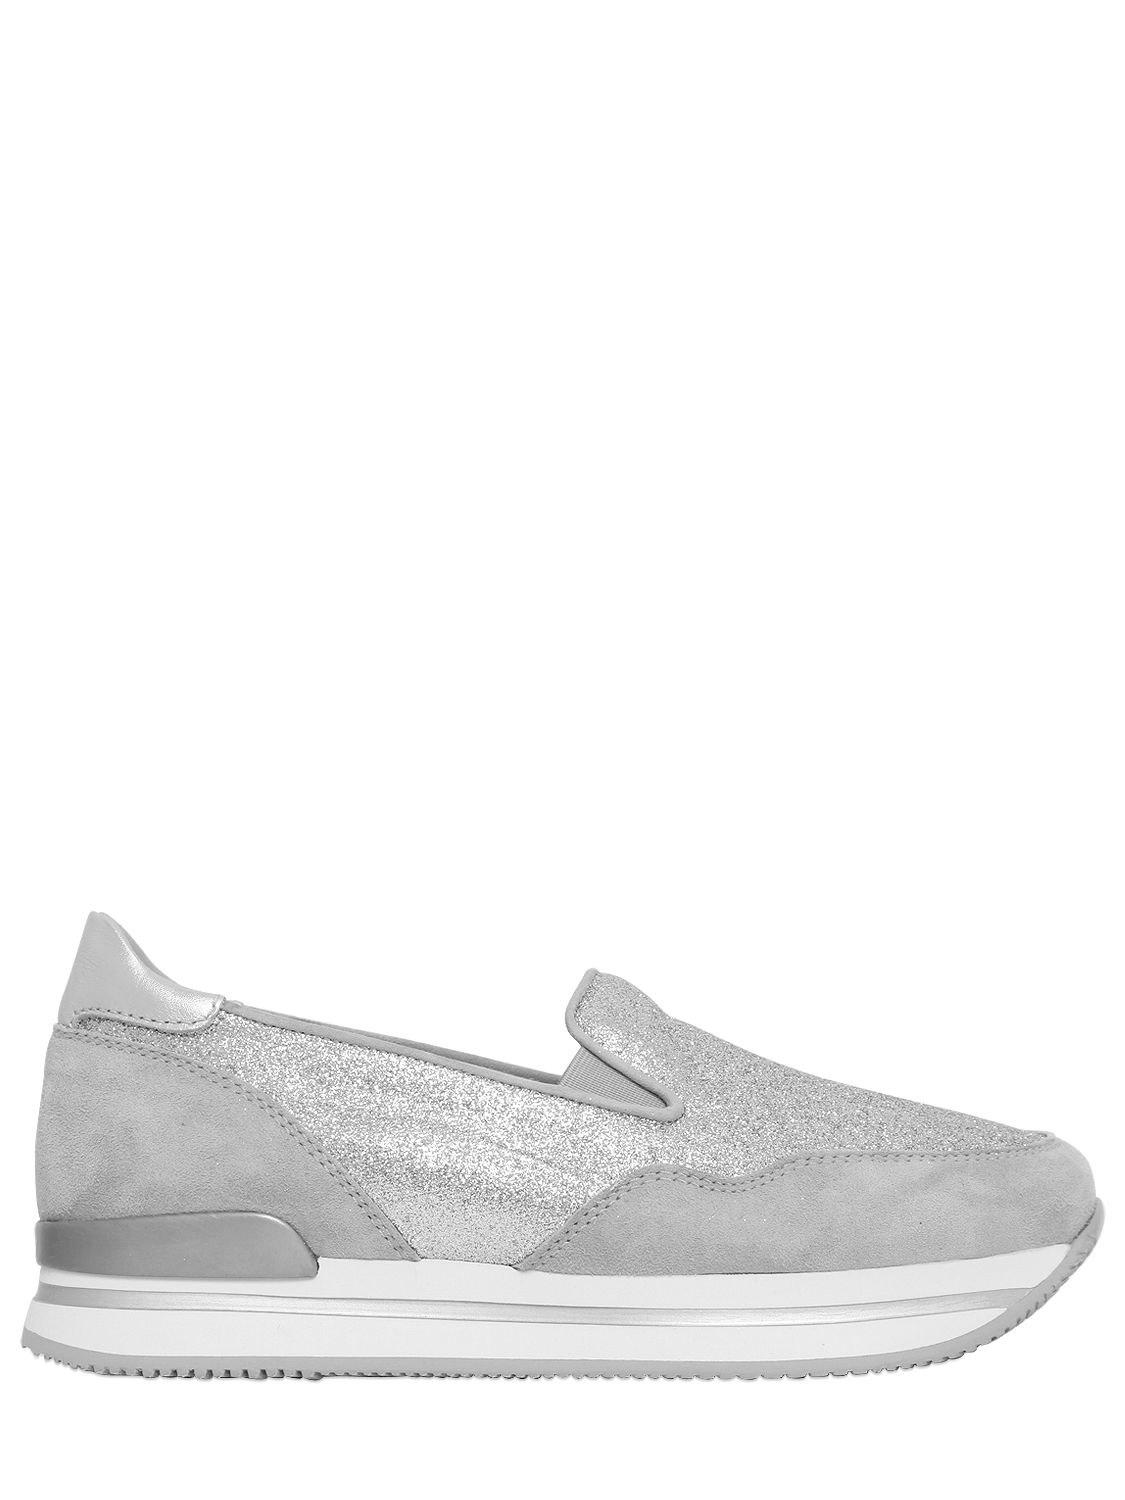 H222 suede and mesh glitter sneakers Hogan xTH9NlaQX